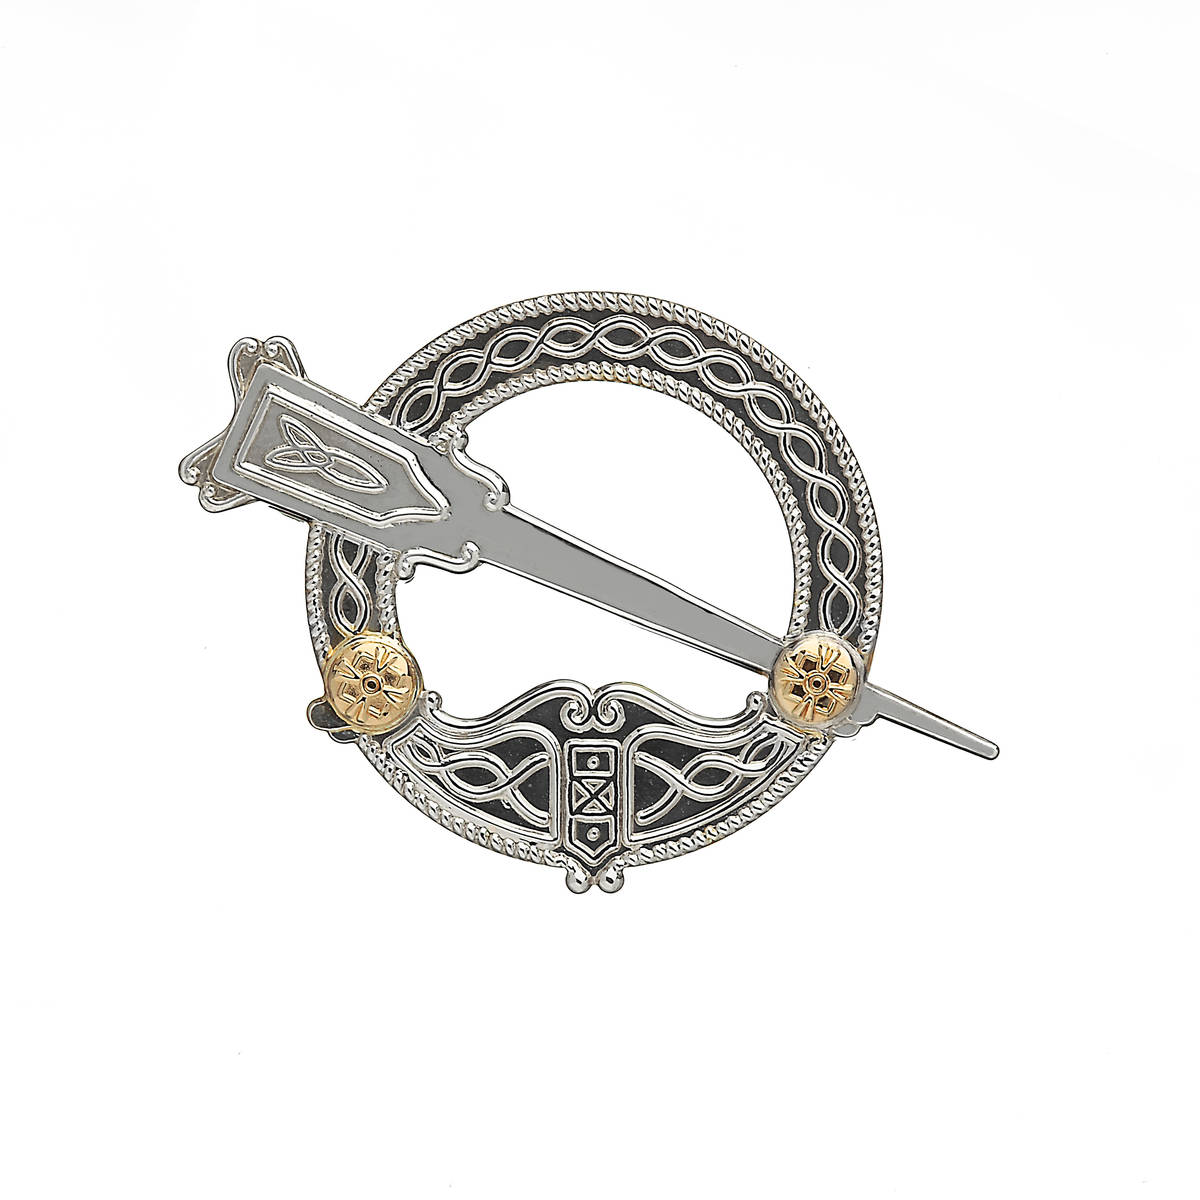 Silver Traditional Di Stamper Small Tara Brooch With 14ct Y/gold Details  Silver small Tara brooch presented in it's traditional style.a replica of an ancient Irish artifact going back several thousand years.